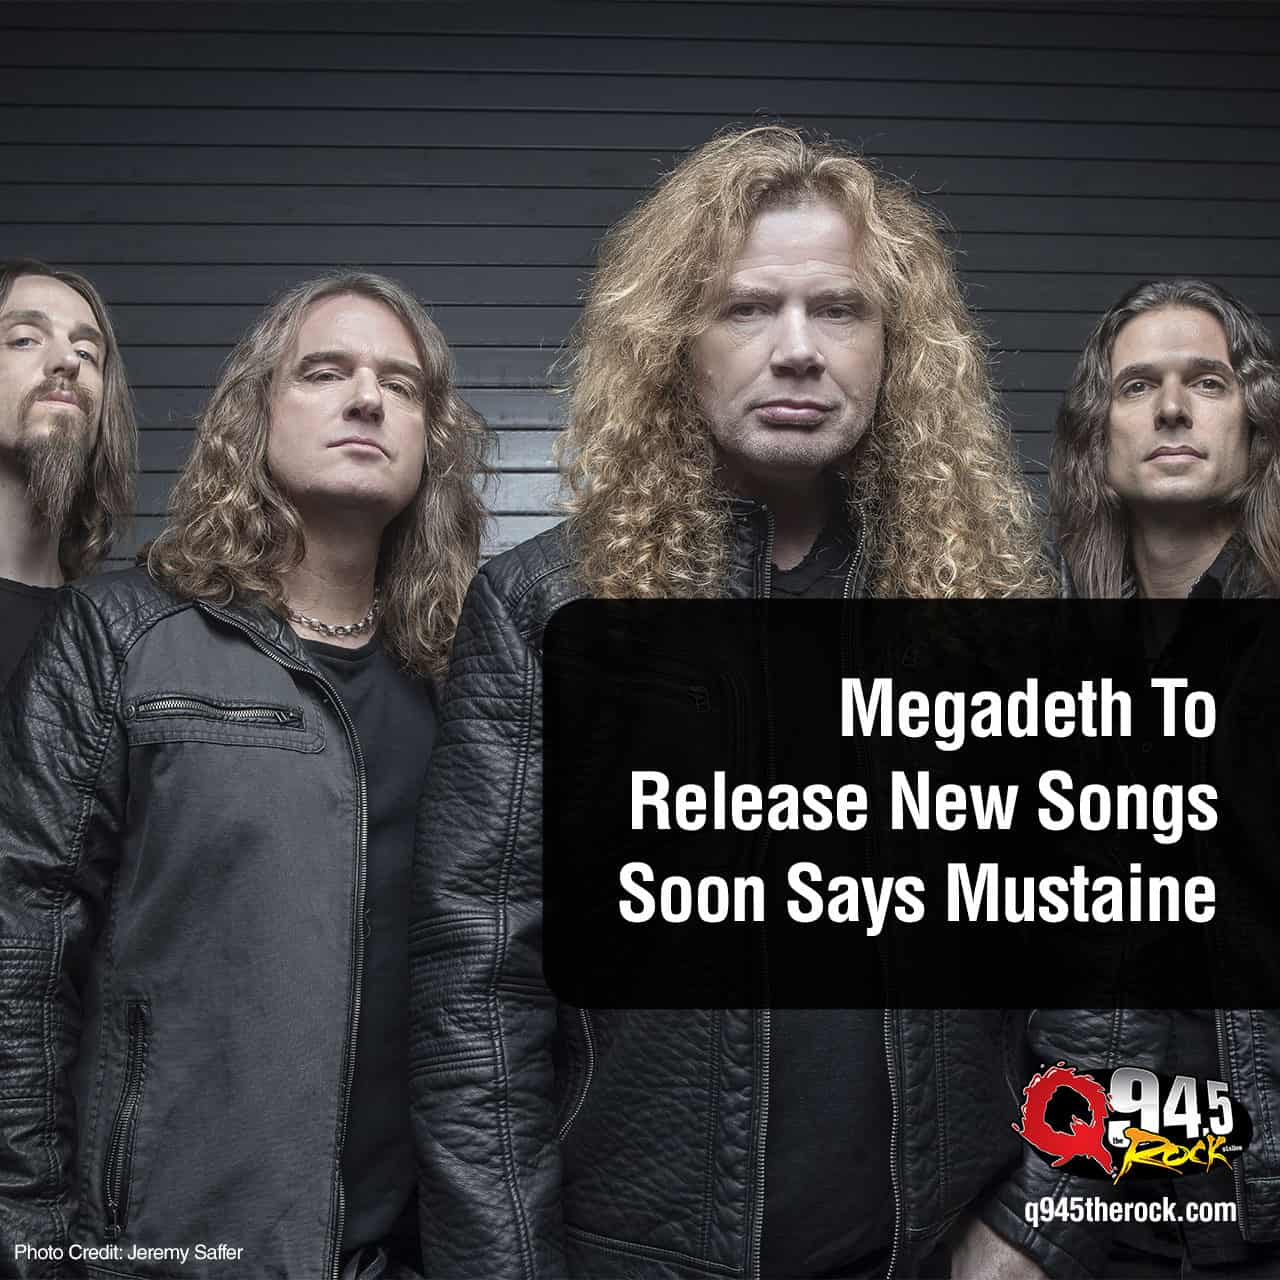 Megadeth To Release New Songs Soon Says Mustaine -  KFRQ Q94.5